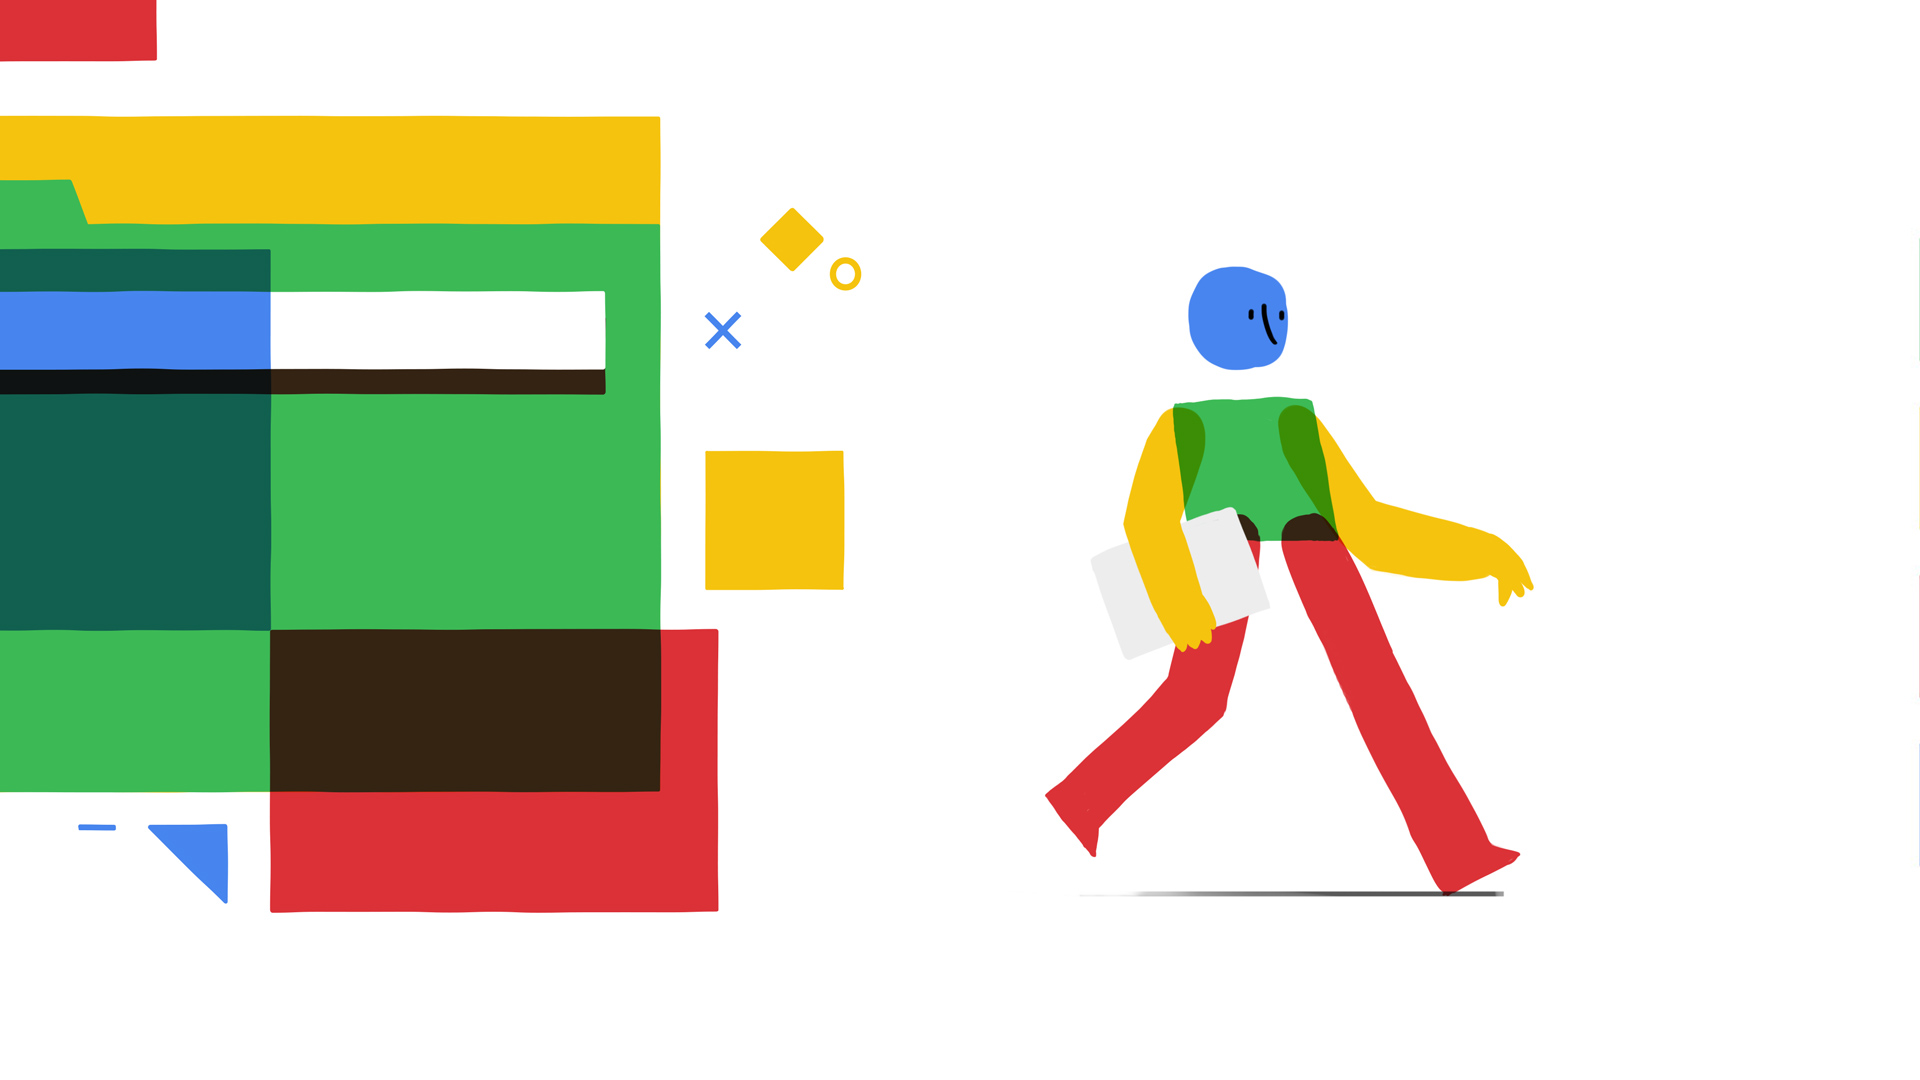 chrome_character_sketches_abstract_v002.jpg